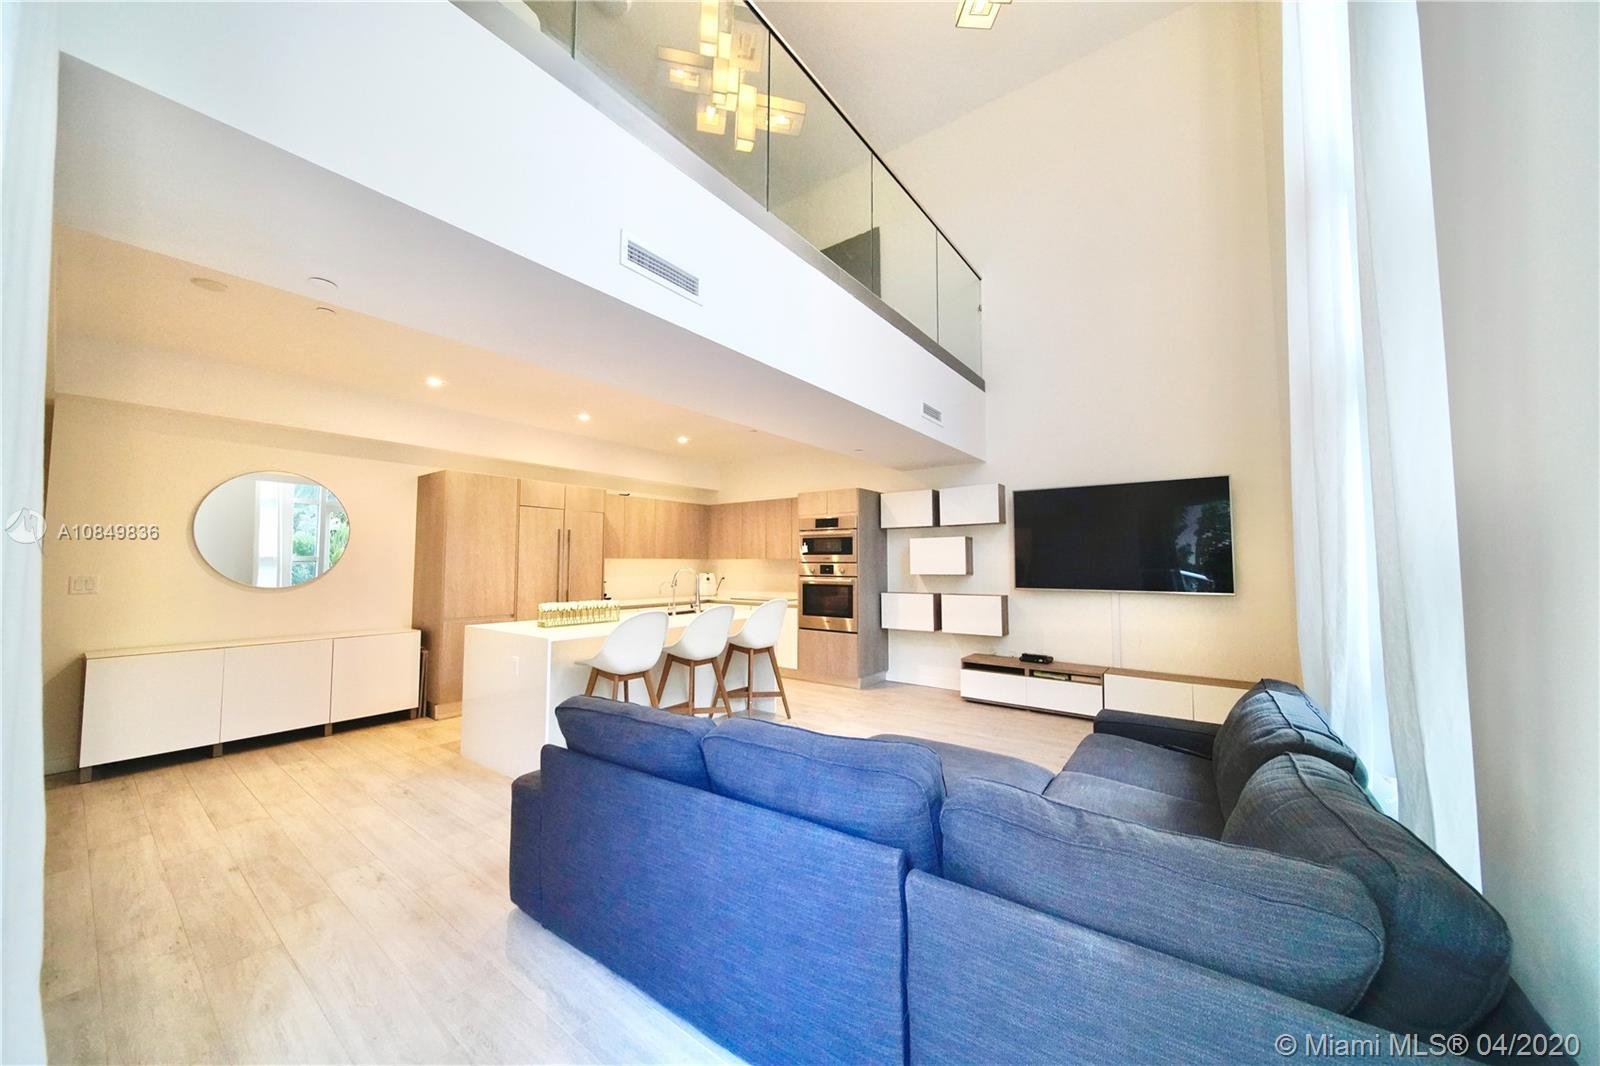 Miami Design District Townhomes! Exclusive gated enclave of 38 ultra-modern townhomes located betwee